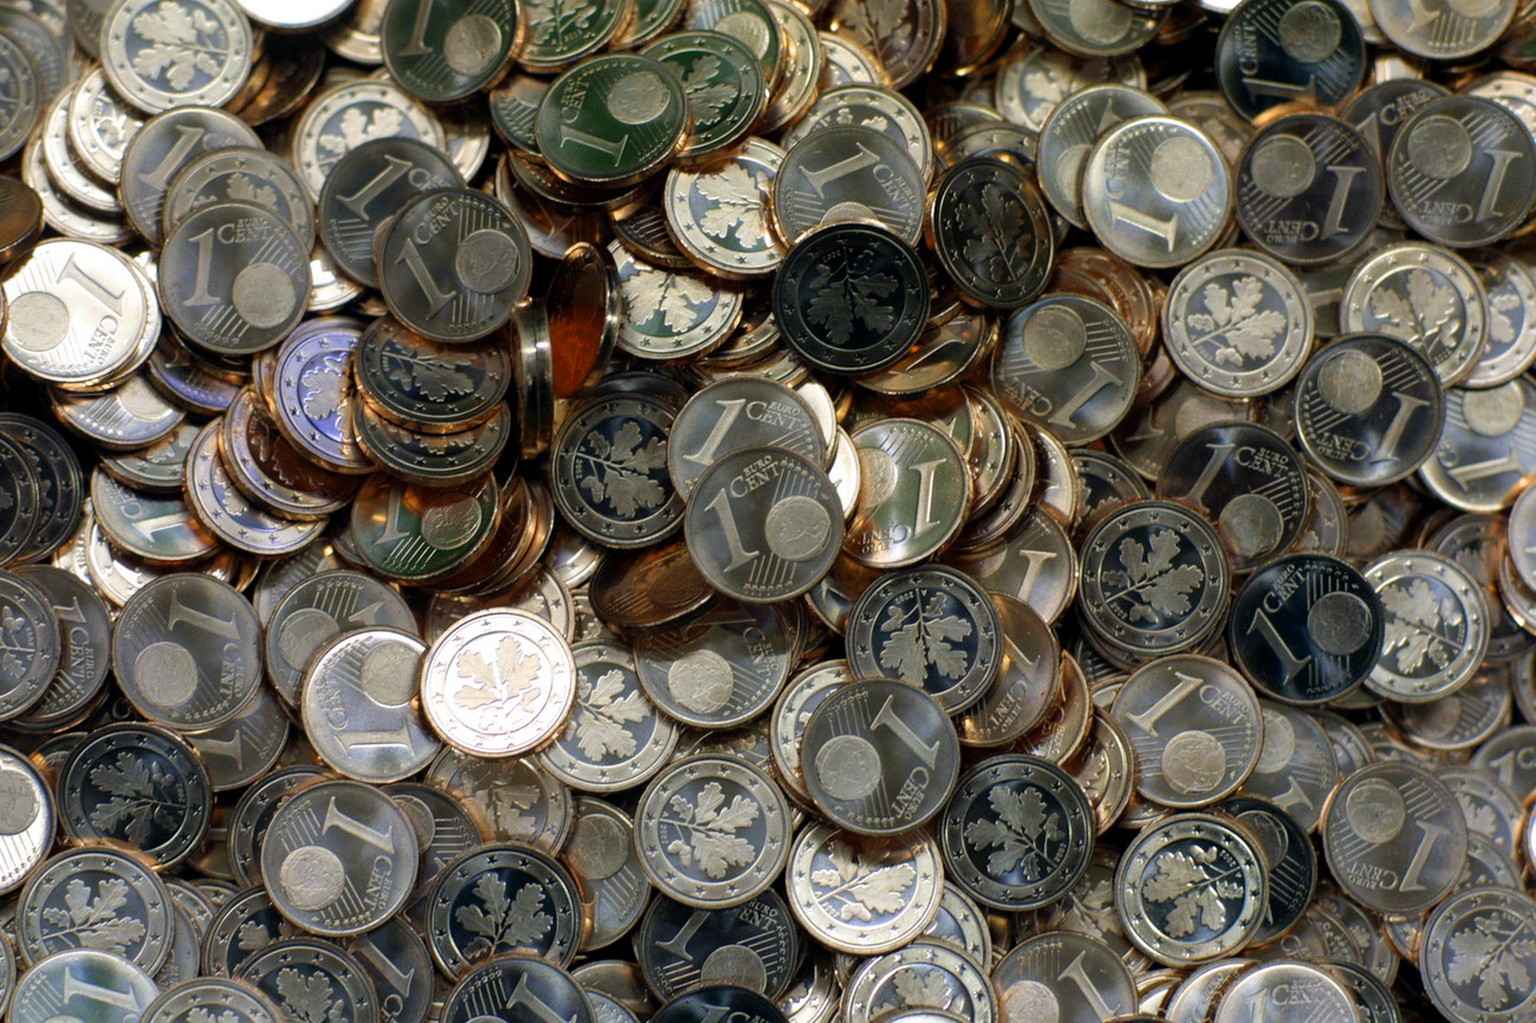 One Cent coins of the Euro photographed in a German government mint in Berlin October 4, 2001. From January 1, 2002 , in the most States of the European Union the Euro will be the new currency. (KEYSTONE/AP Photo/Markus Schreiber)